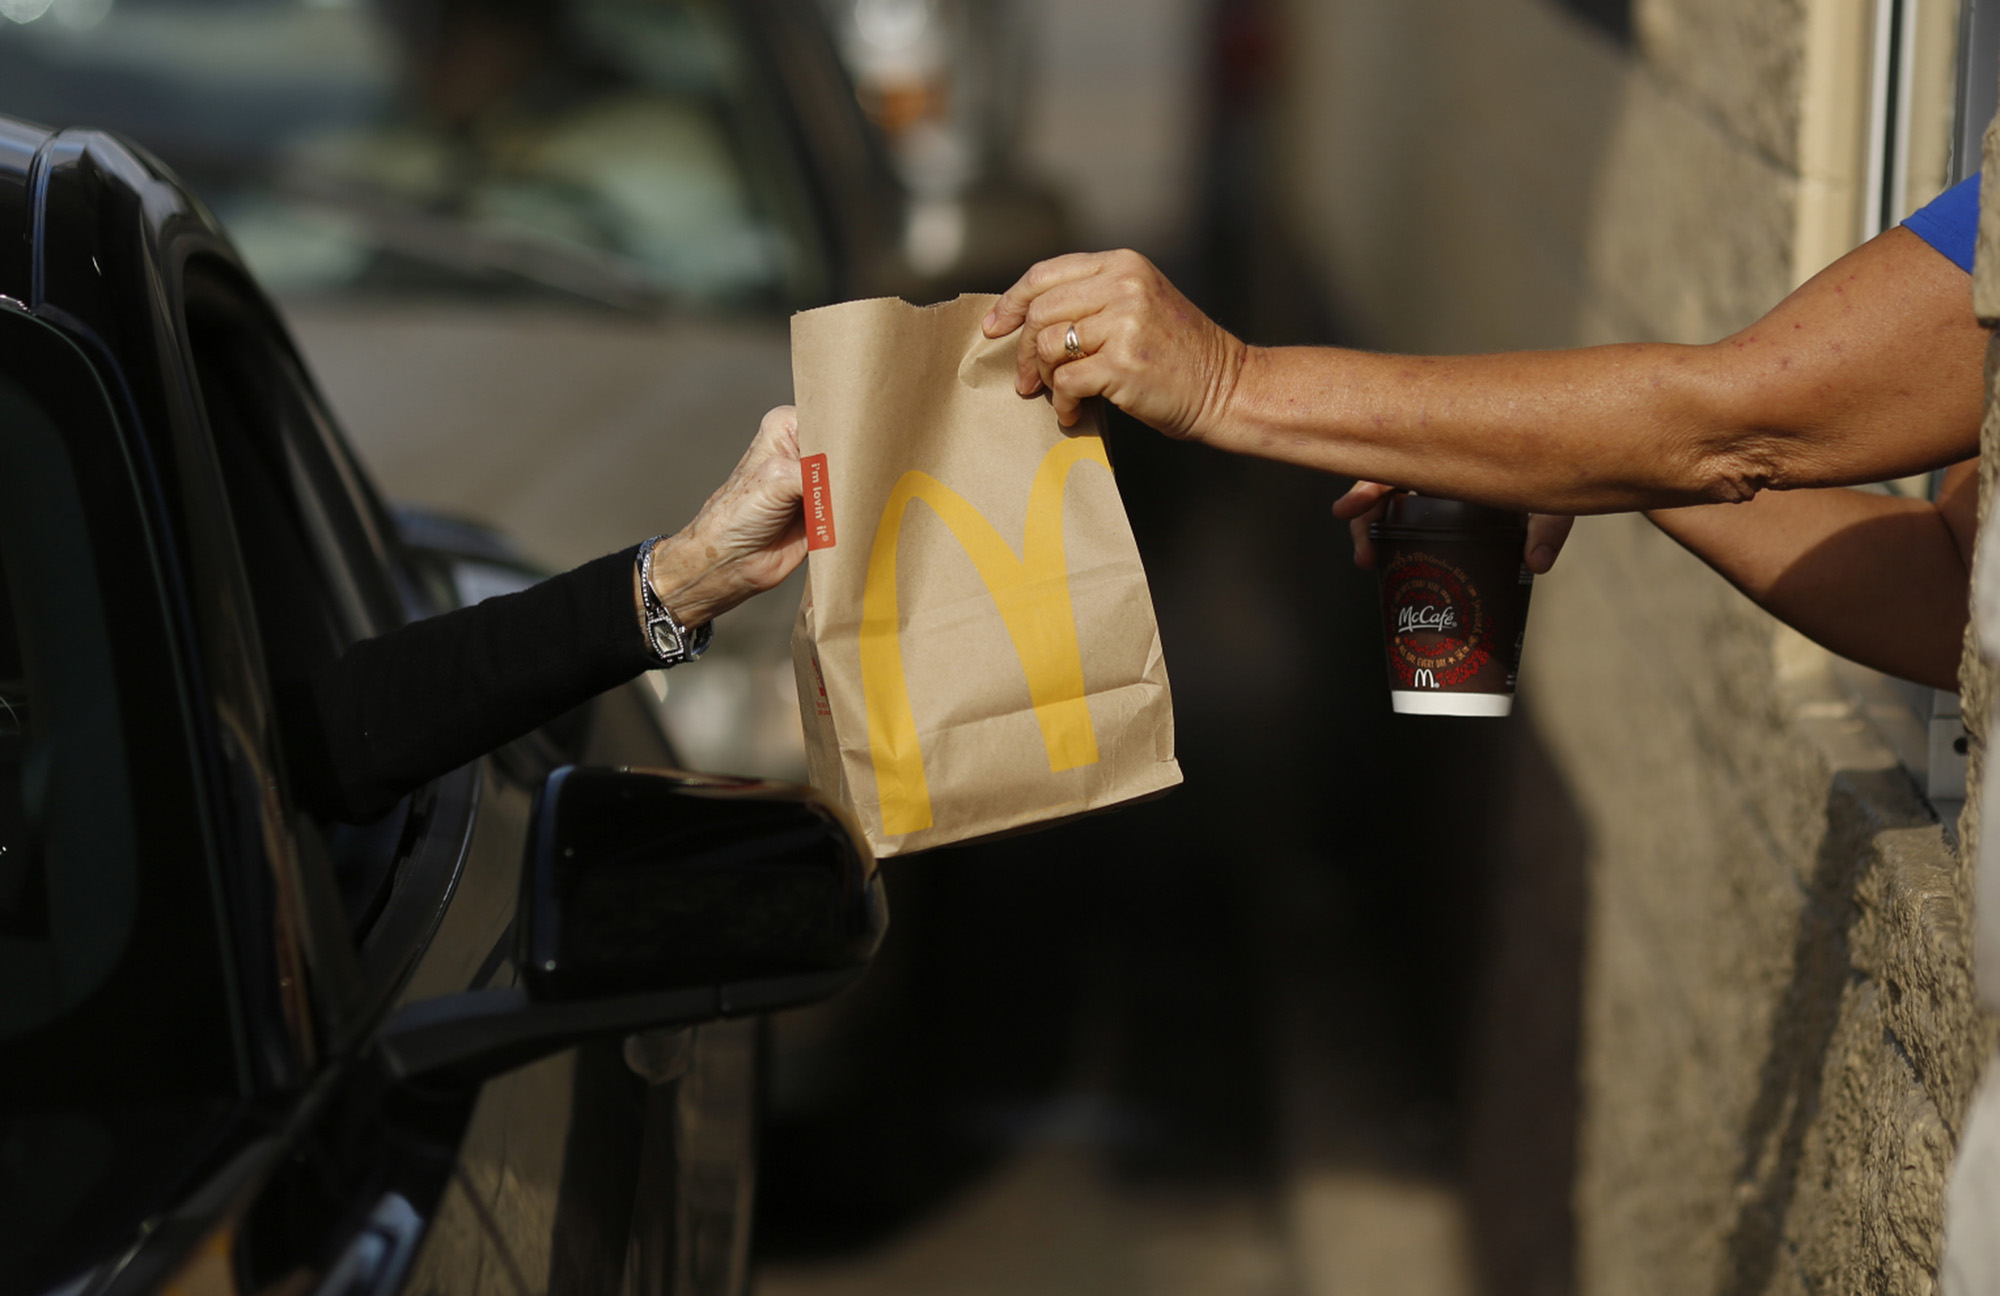 McDonald's Ties 15% of Executive Pay to Diversity Targets, Releases Data